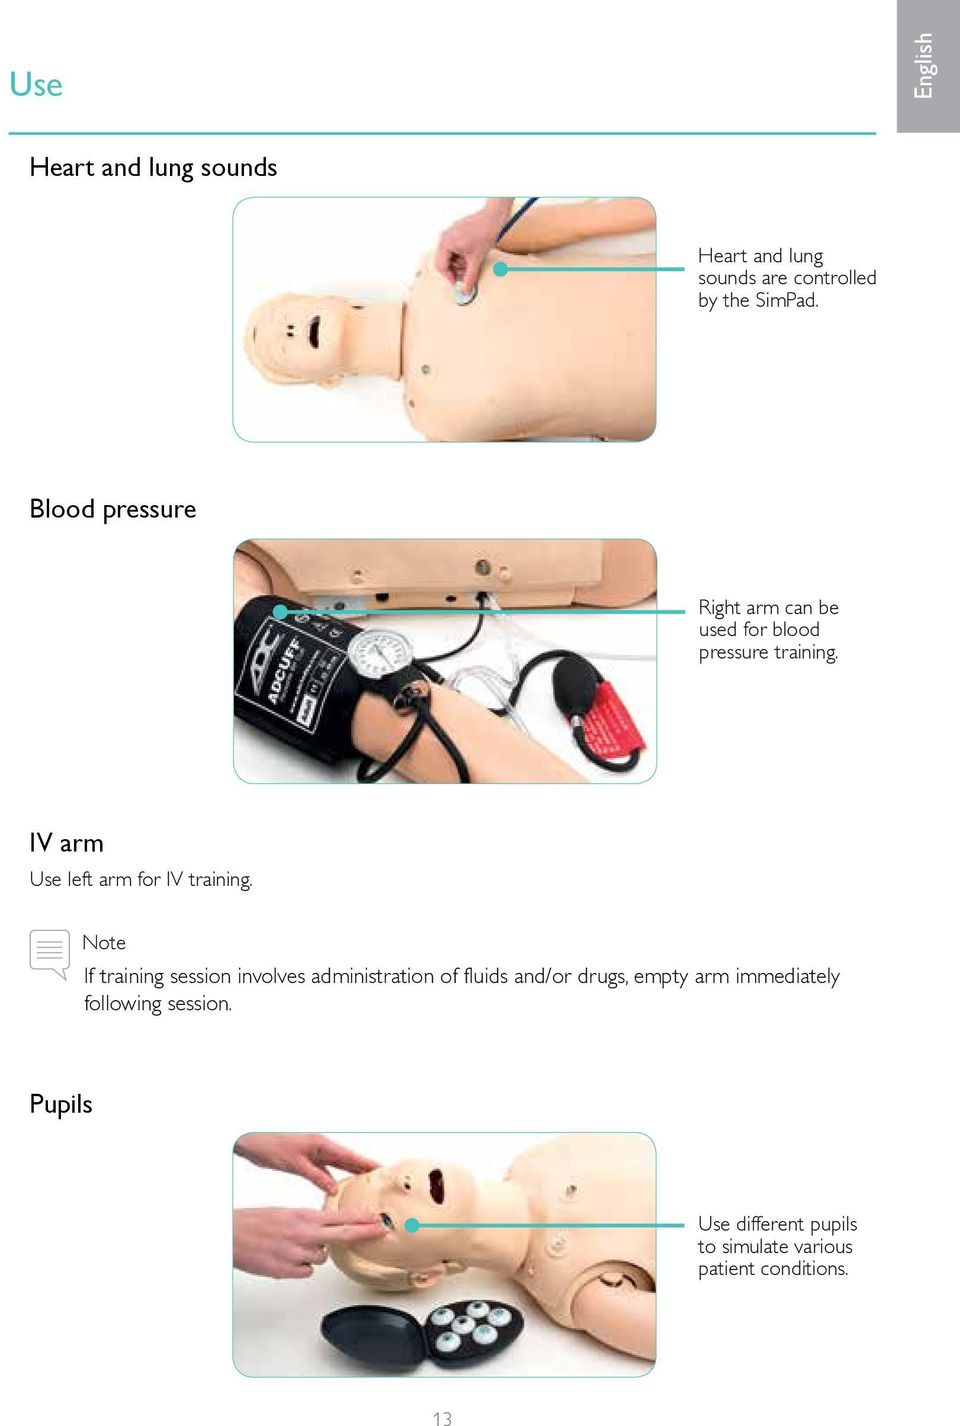 IV arm Use left arm for IV training.